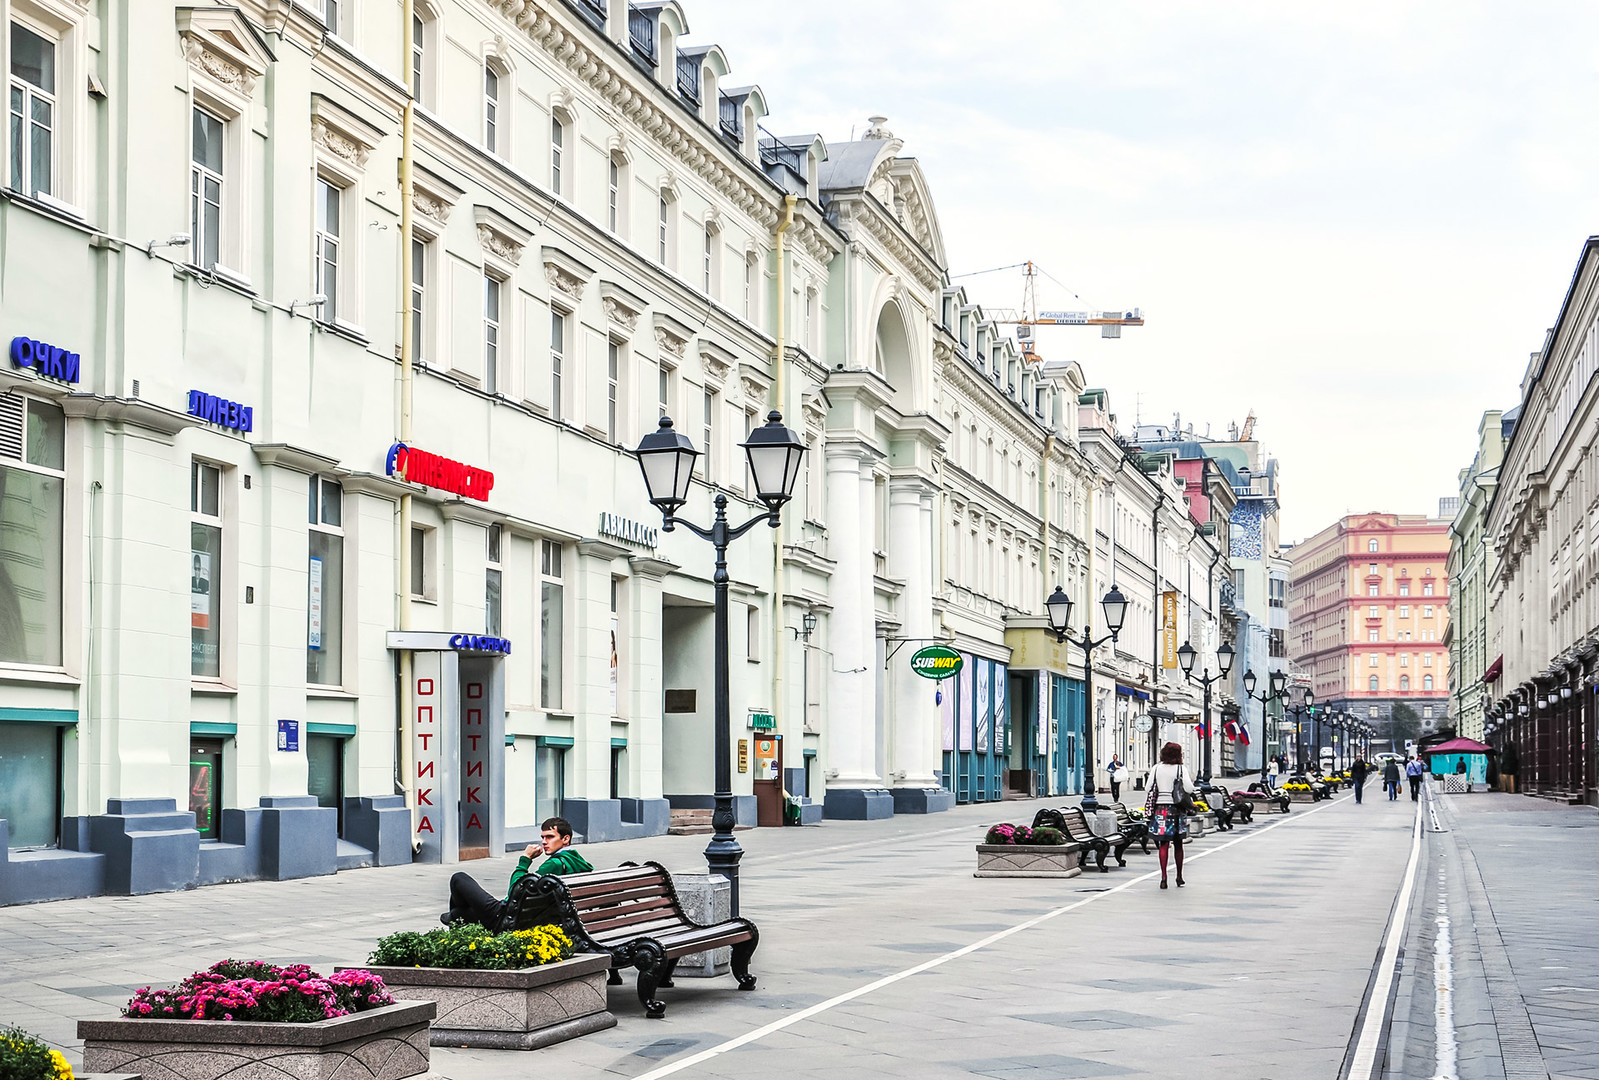 Nikolskaya Street in Moscow, where Slavyansky Bazar Hotel and Restaurant used to be.